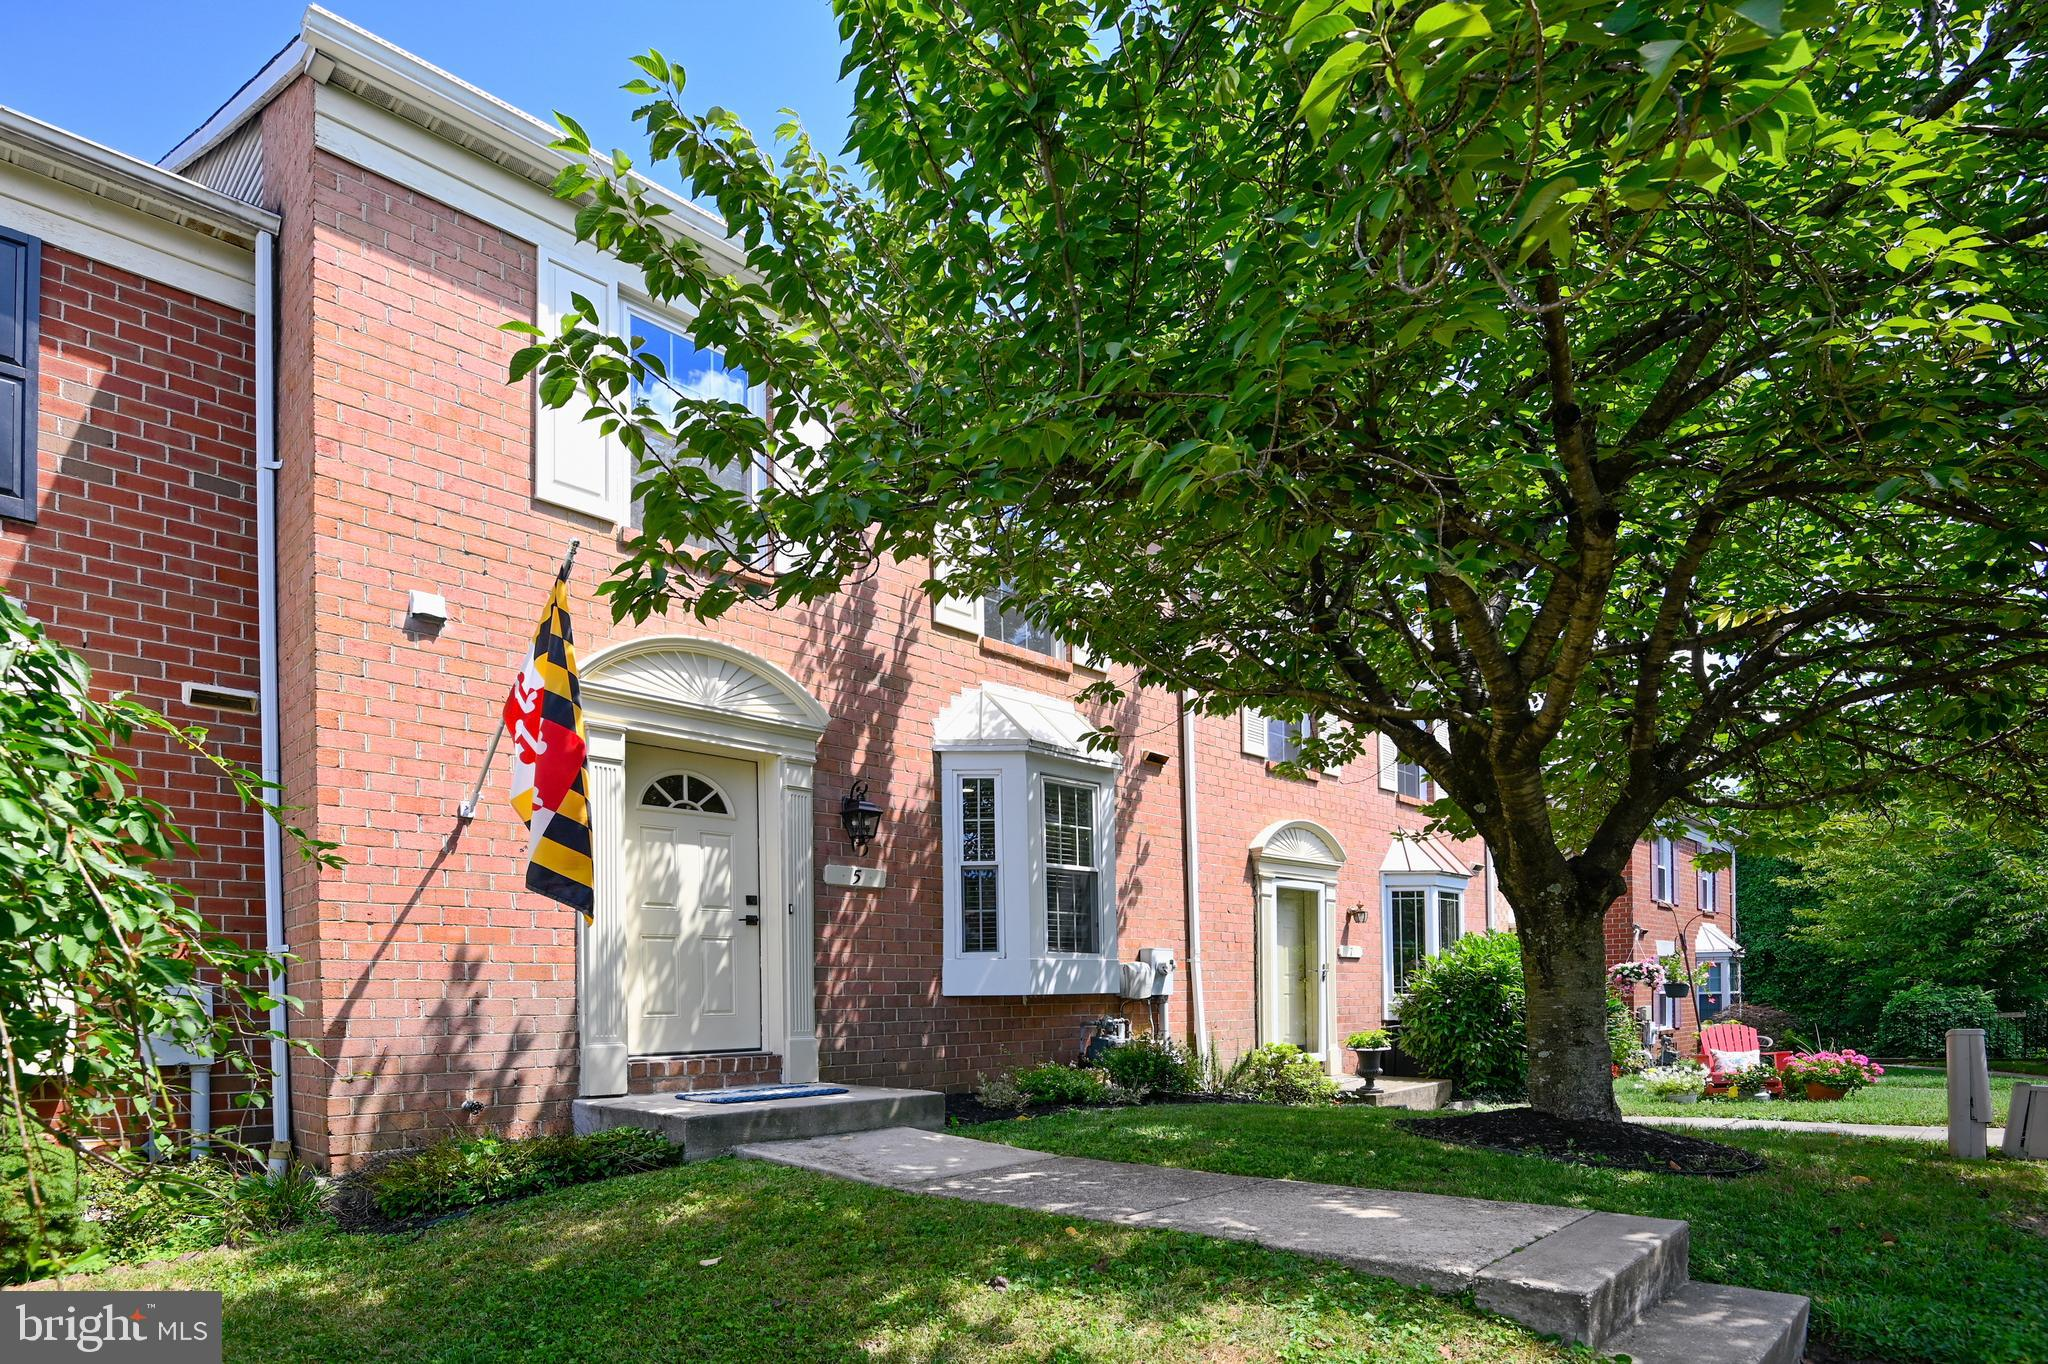 Impeccably maintained, modernized and ideally located three level townhome.   Bright, bay-windowed kitchen featuring white shaker cabinets with stone tops and stainless appliances.  Pass-thru looks onto an open dining and living room concept with updated flooring, and accented with a reclaimed wood feature wall.  Elevated deck off the living room is accessed through recently replaced glass doors.  Three bedrooms occupy the top level, highlighted by a large vaulted ceiling Master Suite, with walk-in closet and dual-sink bathroom.  Recently installed laminated double-pane windows also can be found on the entire floor.  Lower level walkout has an inviting family room, replacement floors and glass door, fireplace with an architecturally interesting mantel, full bathroom, office/exercise room and laundry w/front load washer-dryer.  Family room opens to a paver-stoned patio and landscaped rear yard enclosed by a 6' privacy fence.  WiFi enabled NEST thermostat system controls the home's heating and new AC unit (spring 2020).  The home neighbors Lake Roland Park and its ample outdoor activities - a true feeling of living in the country.  Minutes from the beltway and downtown.  This is the one for you!  See Virtual Tour for Interactive Floor Plan.